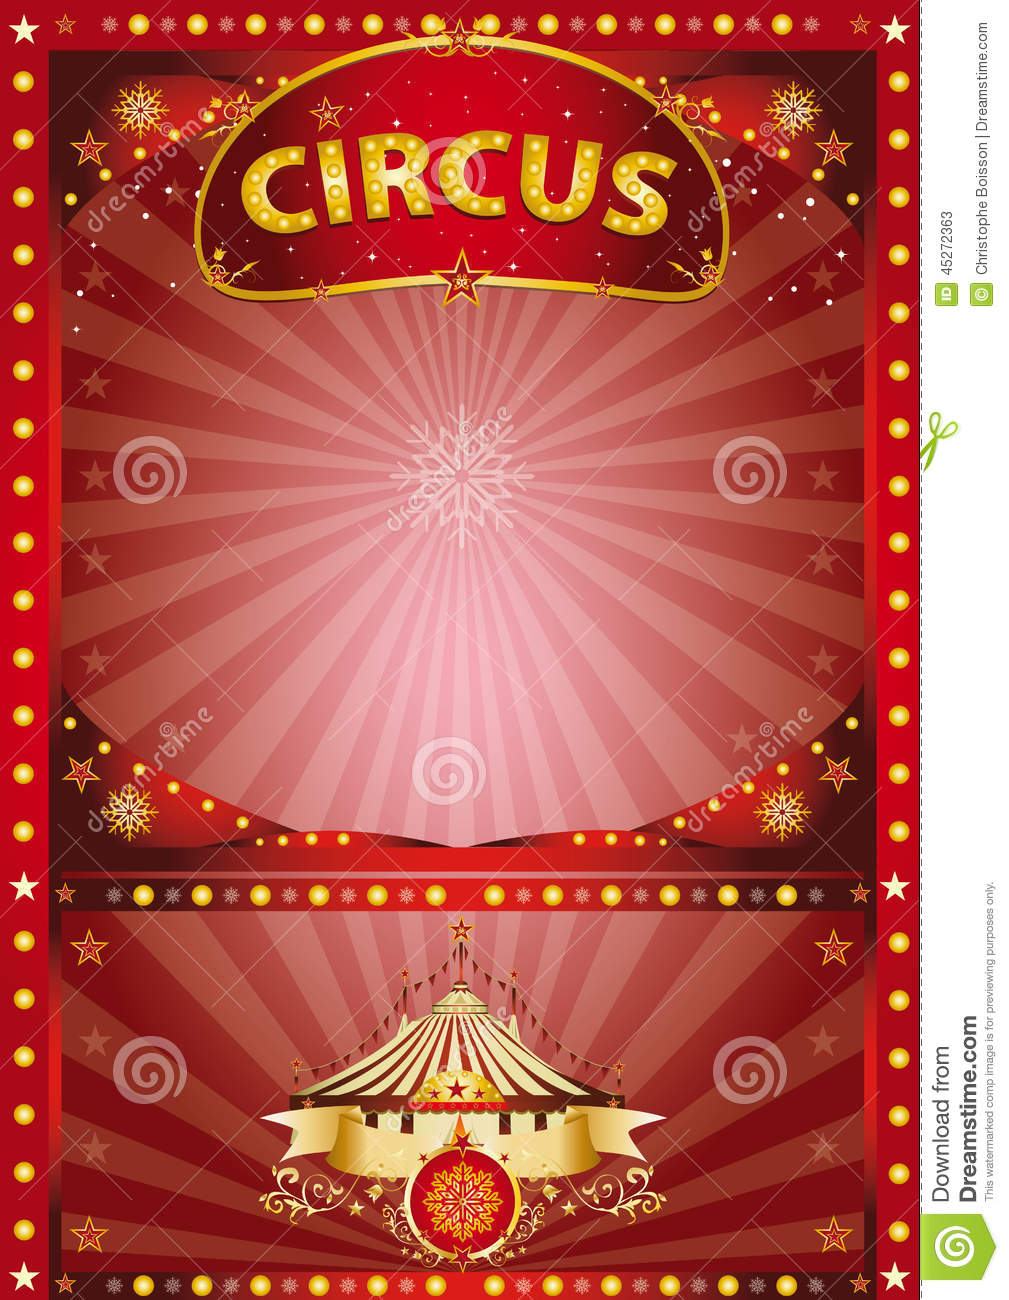 greeting xmas circus poster stock vector image 45272363. Black Bedroom Furniture Sets. Home Design Ideas